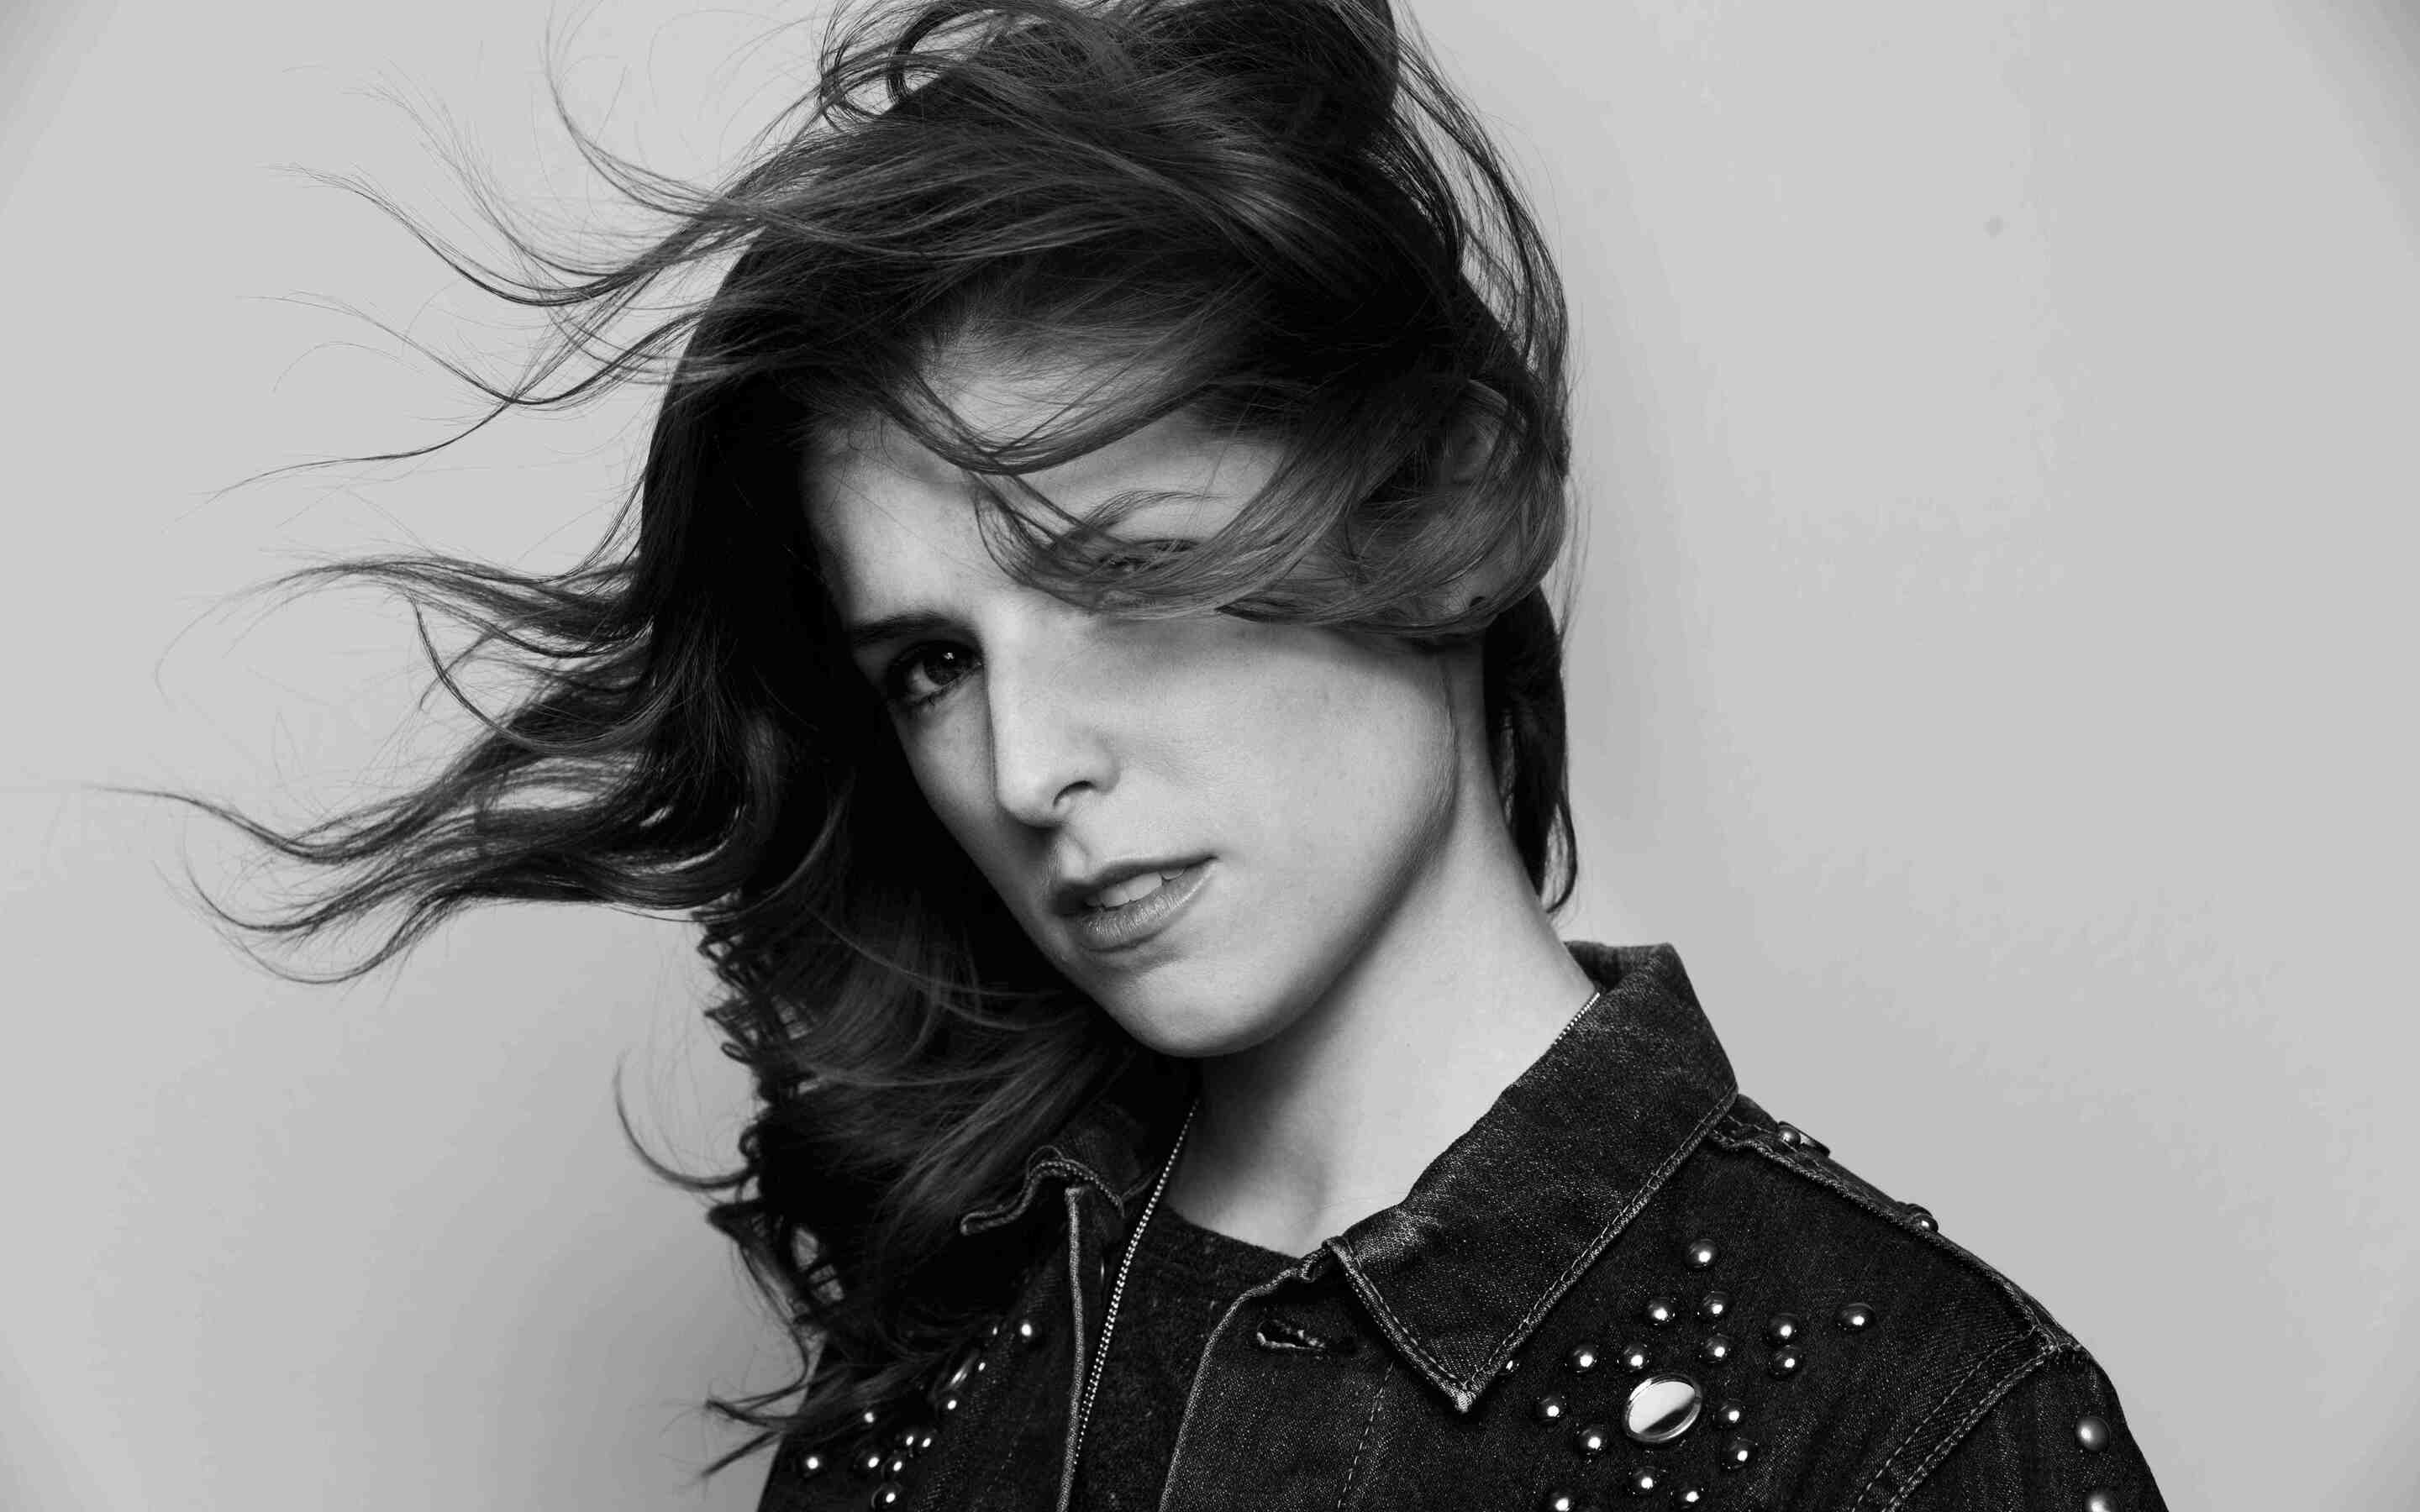 anna-kendrick-black-and-white-5g.jpg